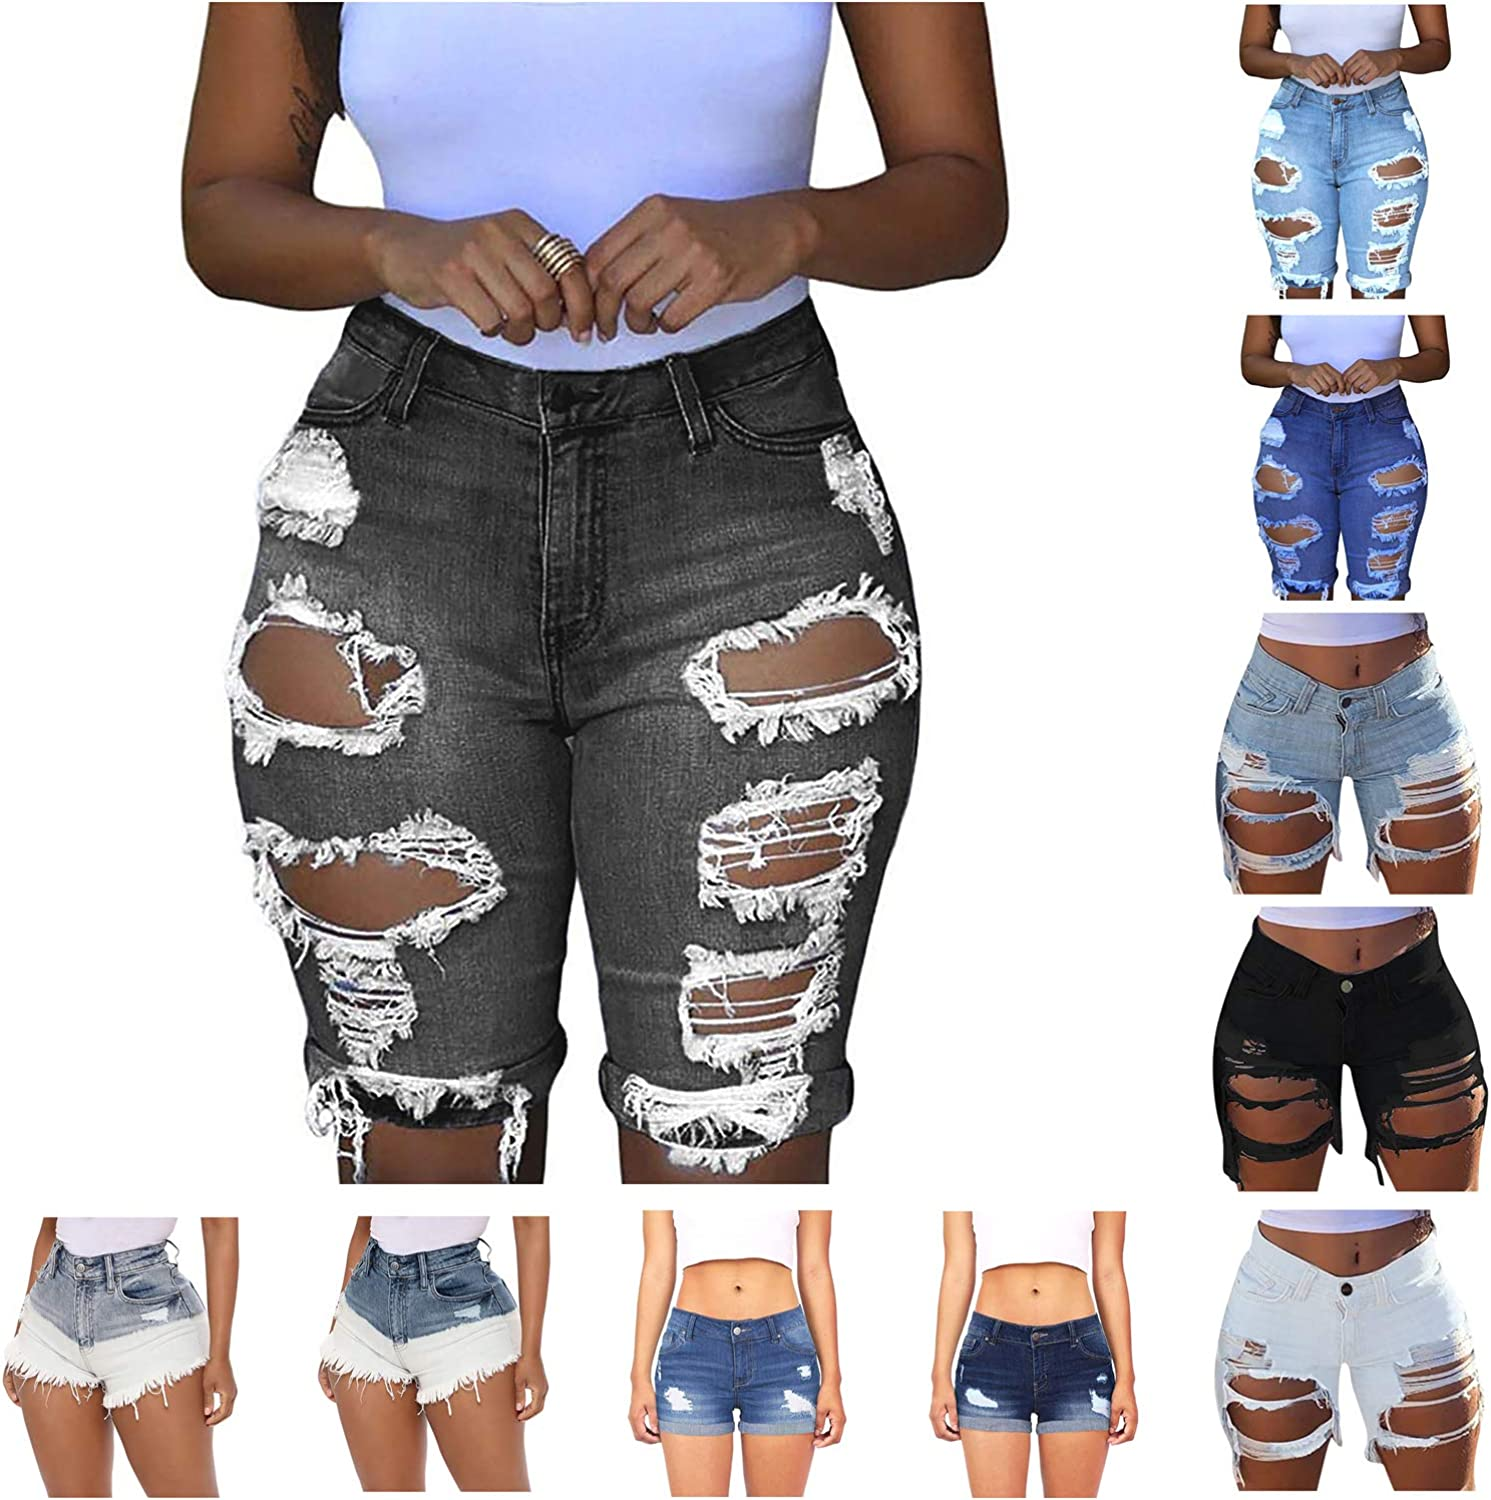 FIRERO Denim Shorts for Women Distressed Ripped Jeans Shorts Stretchy Frayed Raw Hem Hot Denim Shorts with Pockets